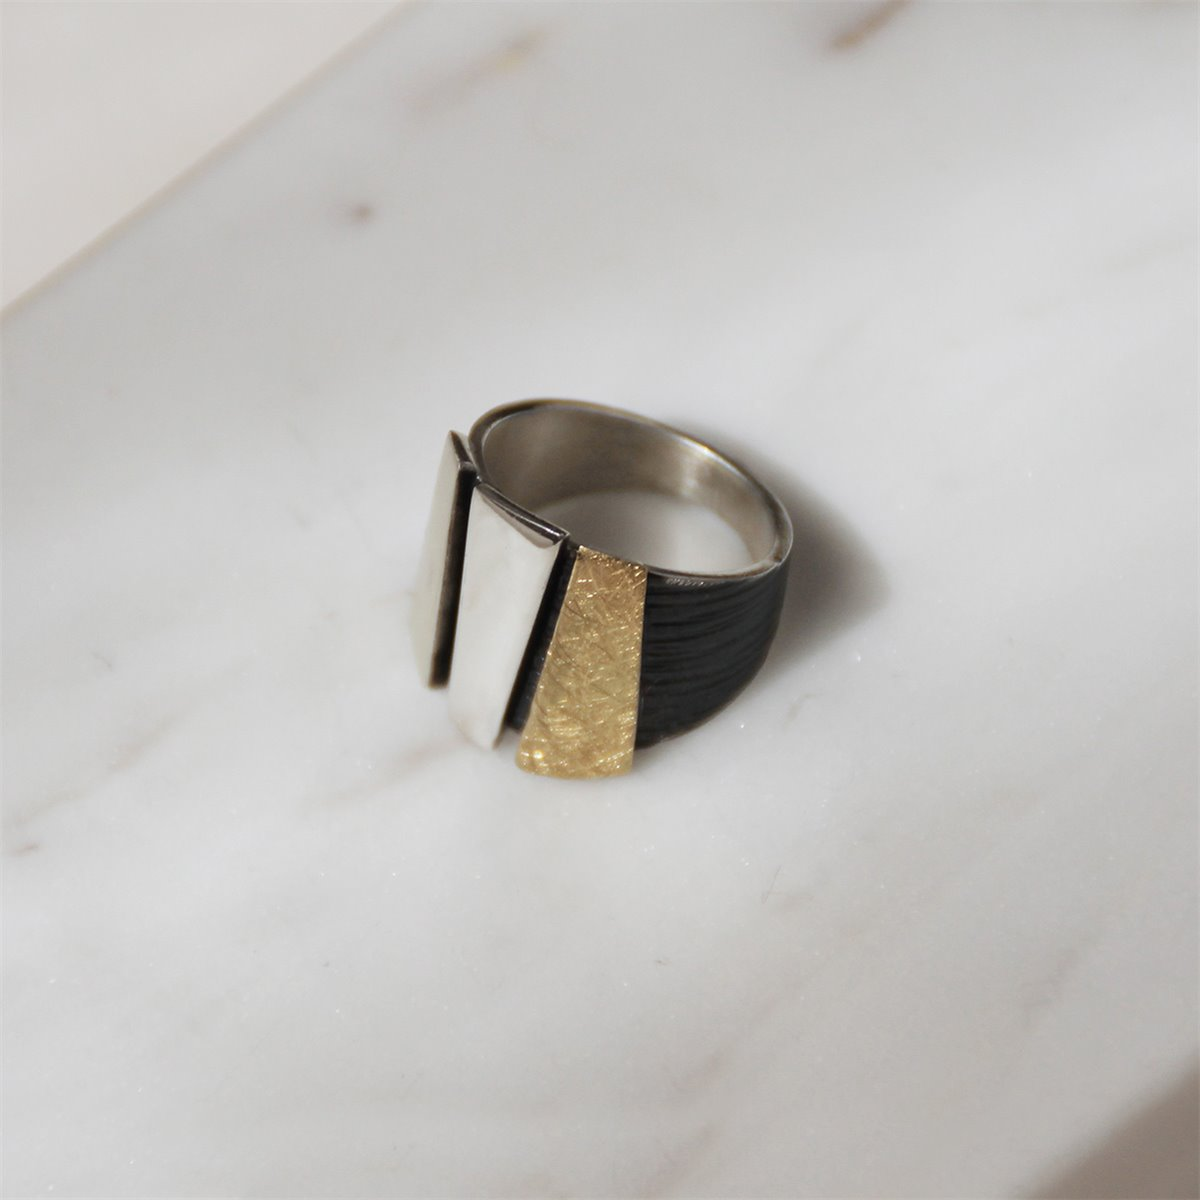 SILVER & GOLD RING.  R1853